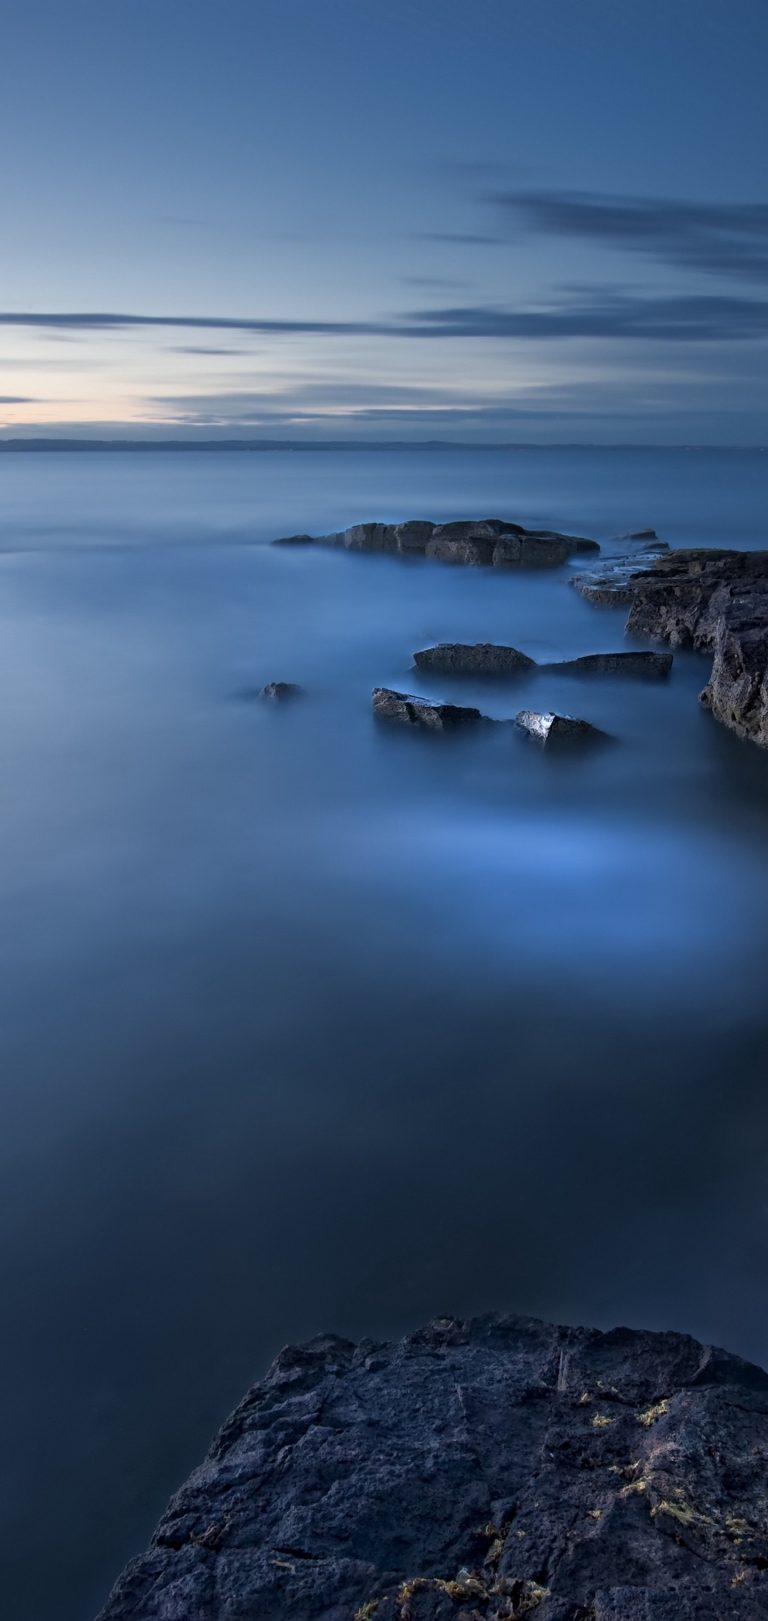 Sea Evening Twilight Great Britain Wallpaper 1440x3040 768x1621